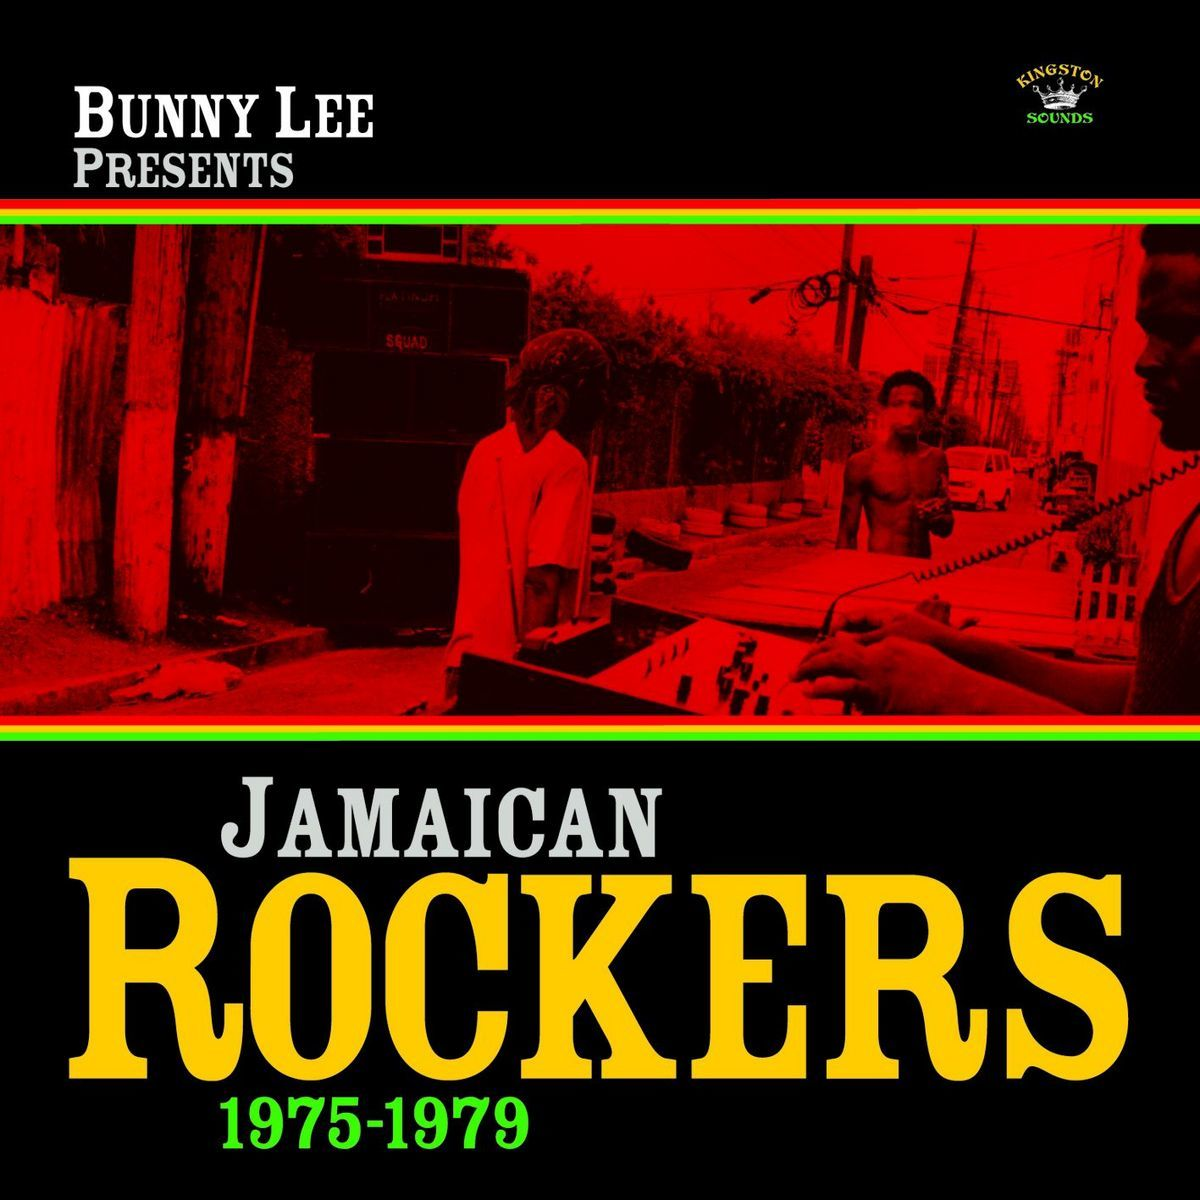 Bunny Lee Presents Jamaican Rockers 1975-1979 (LP) by Various image